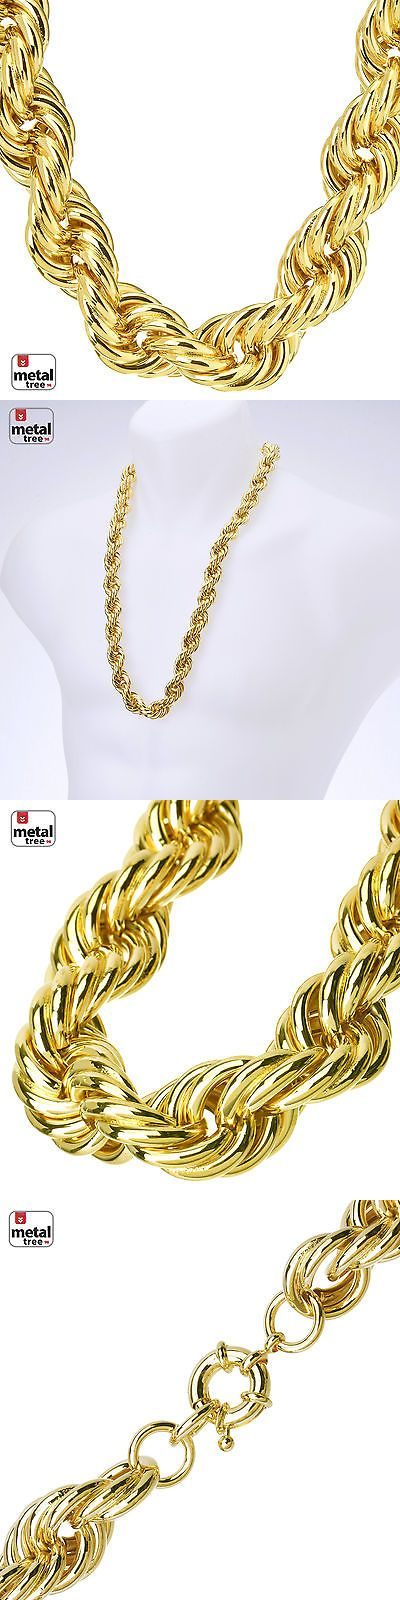 Chains Necklaces and Pendants 137839: Hip Hop Mens Rapper 14K Gold Plated Hollow Chunky Rope Chain Necklace 14 Mm 30 -> BUY IT NOW ONLY: $32.99 on eBay!